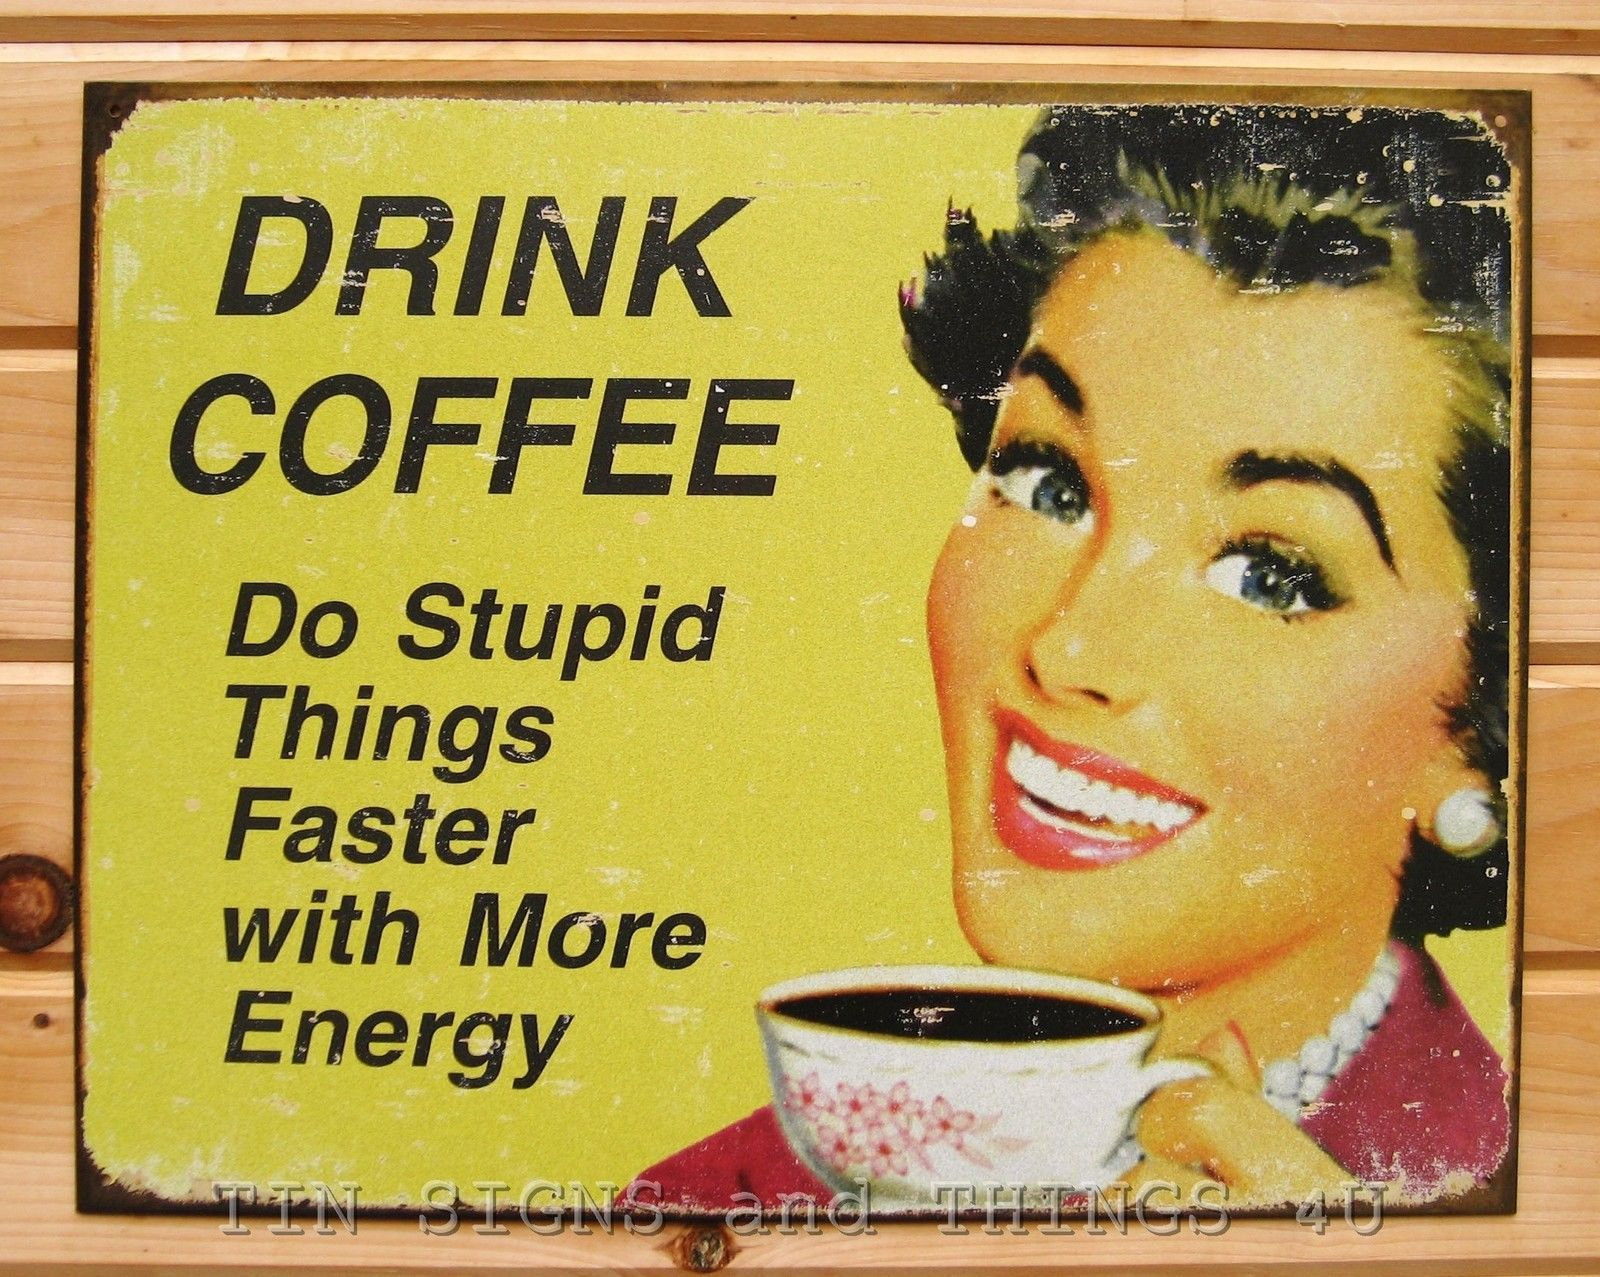 Details About Drink Coffee Do Stupid Things Faster Funny